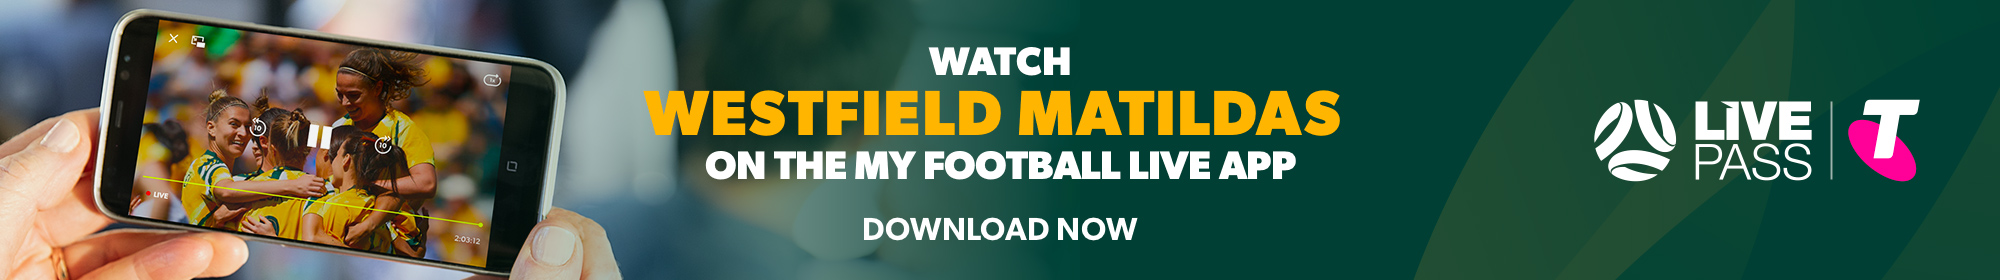 Matildas Telstra Live Pass